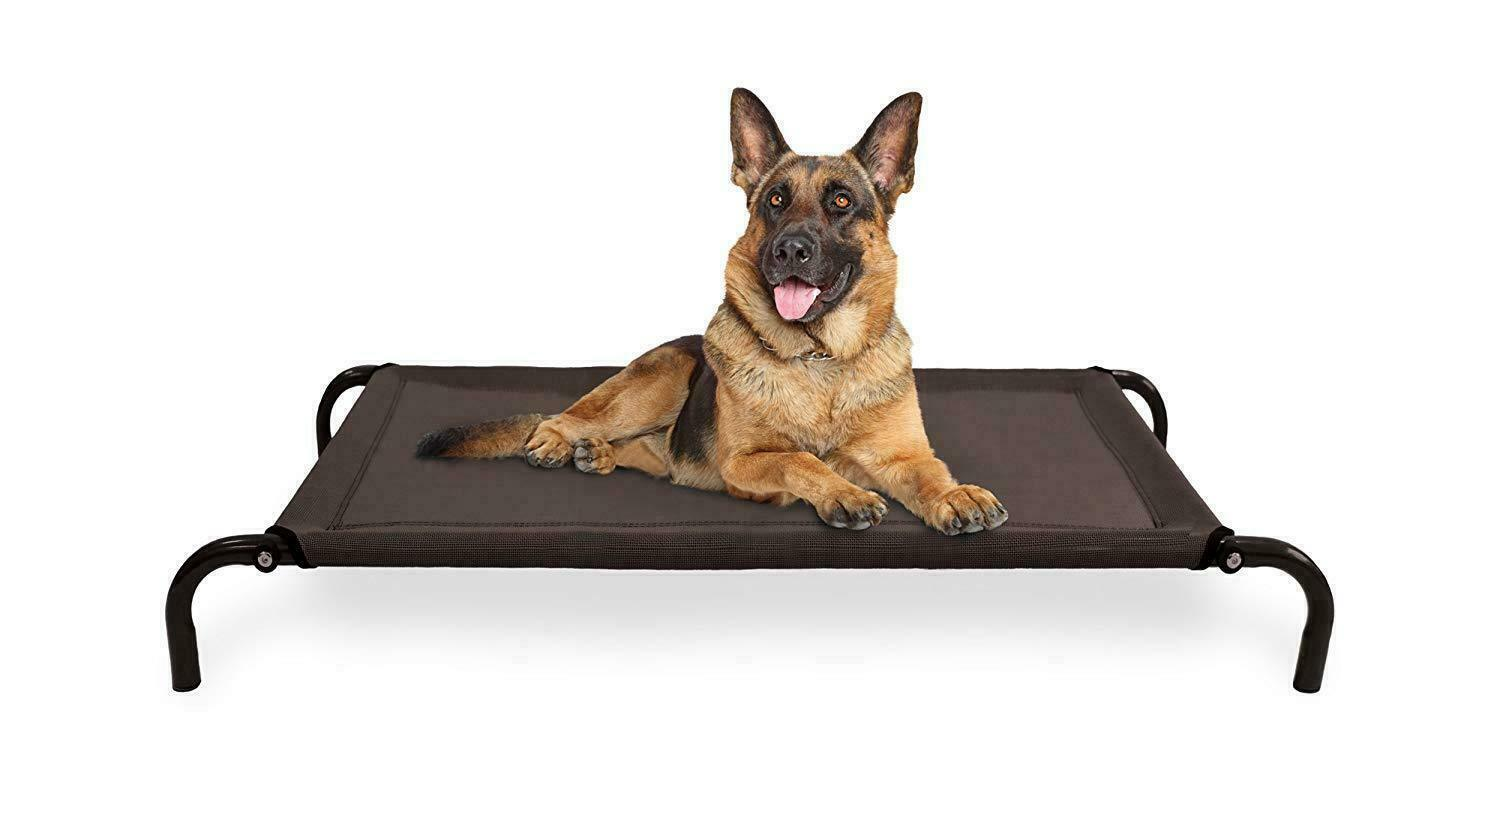 Furhaven Pet Large Cot Pet Bed for Dogs and Cats- Espresso N